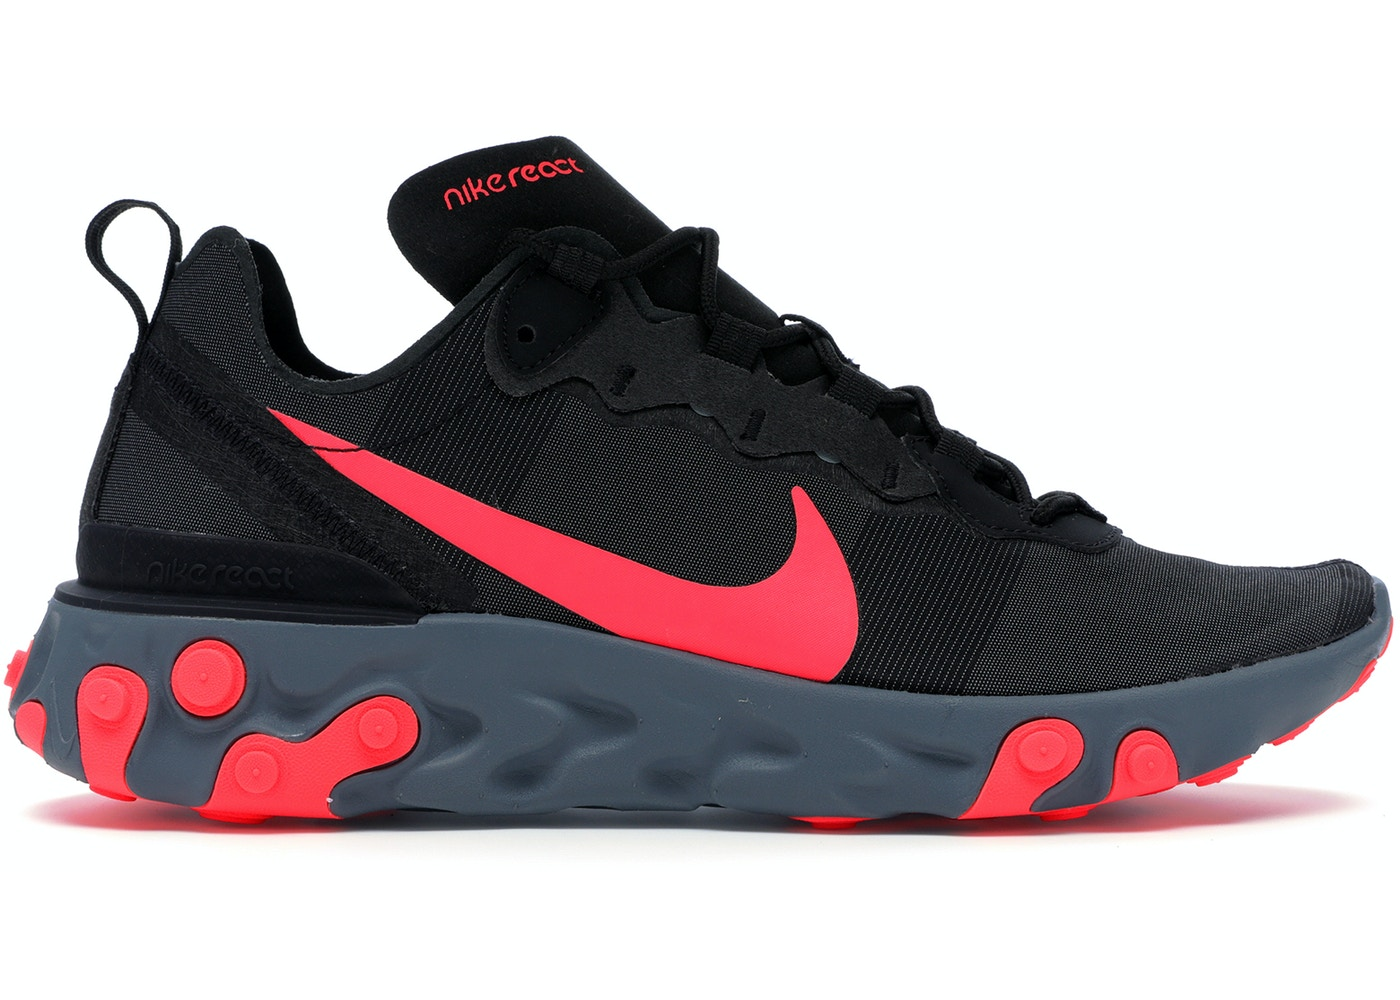 06fb95597f375 Nike React Element 55 Black Solar Red